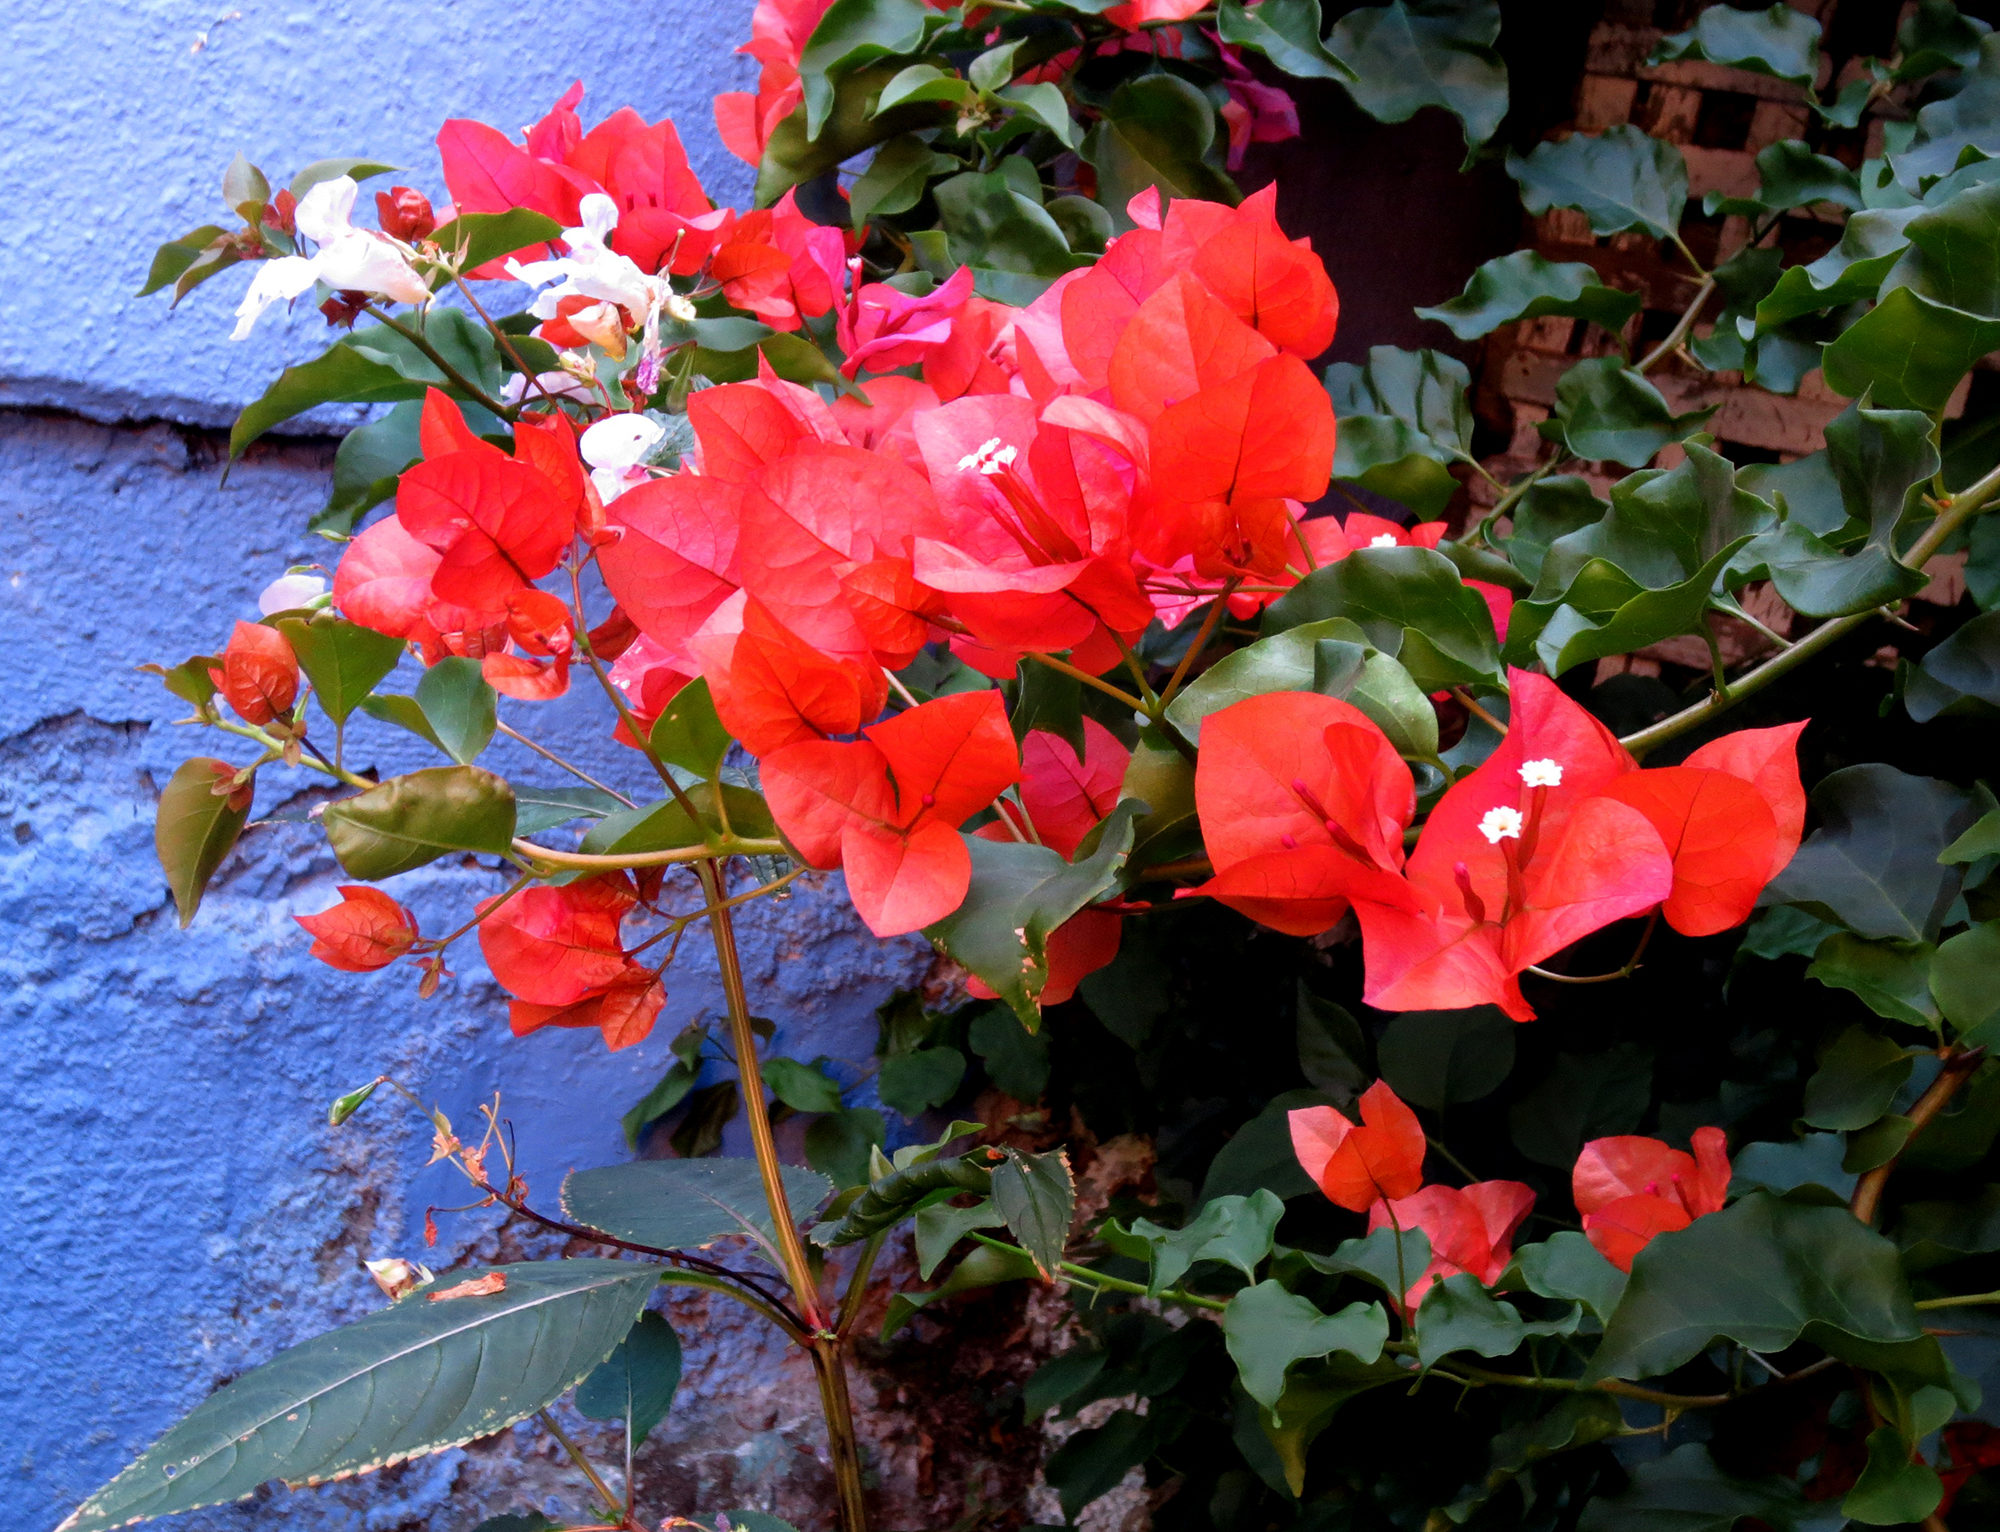 bougainvillea - Photo by Helen Krayenhoff